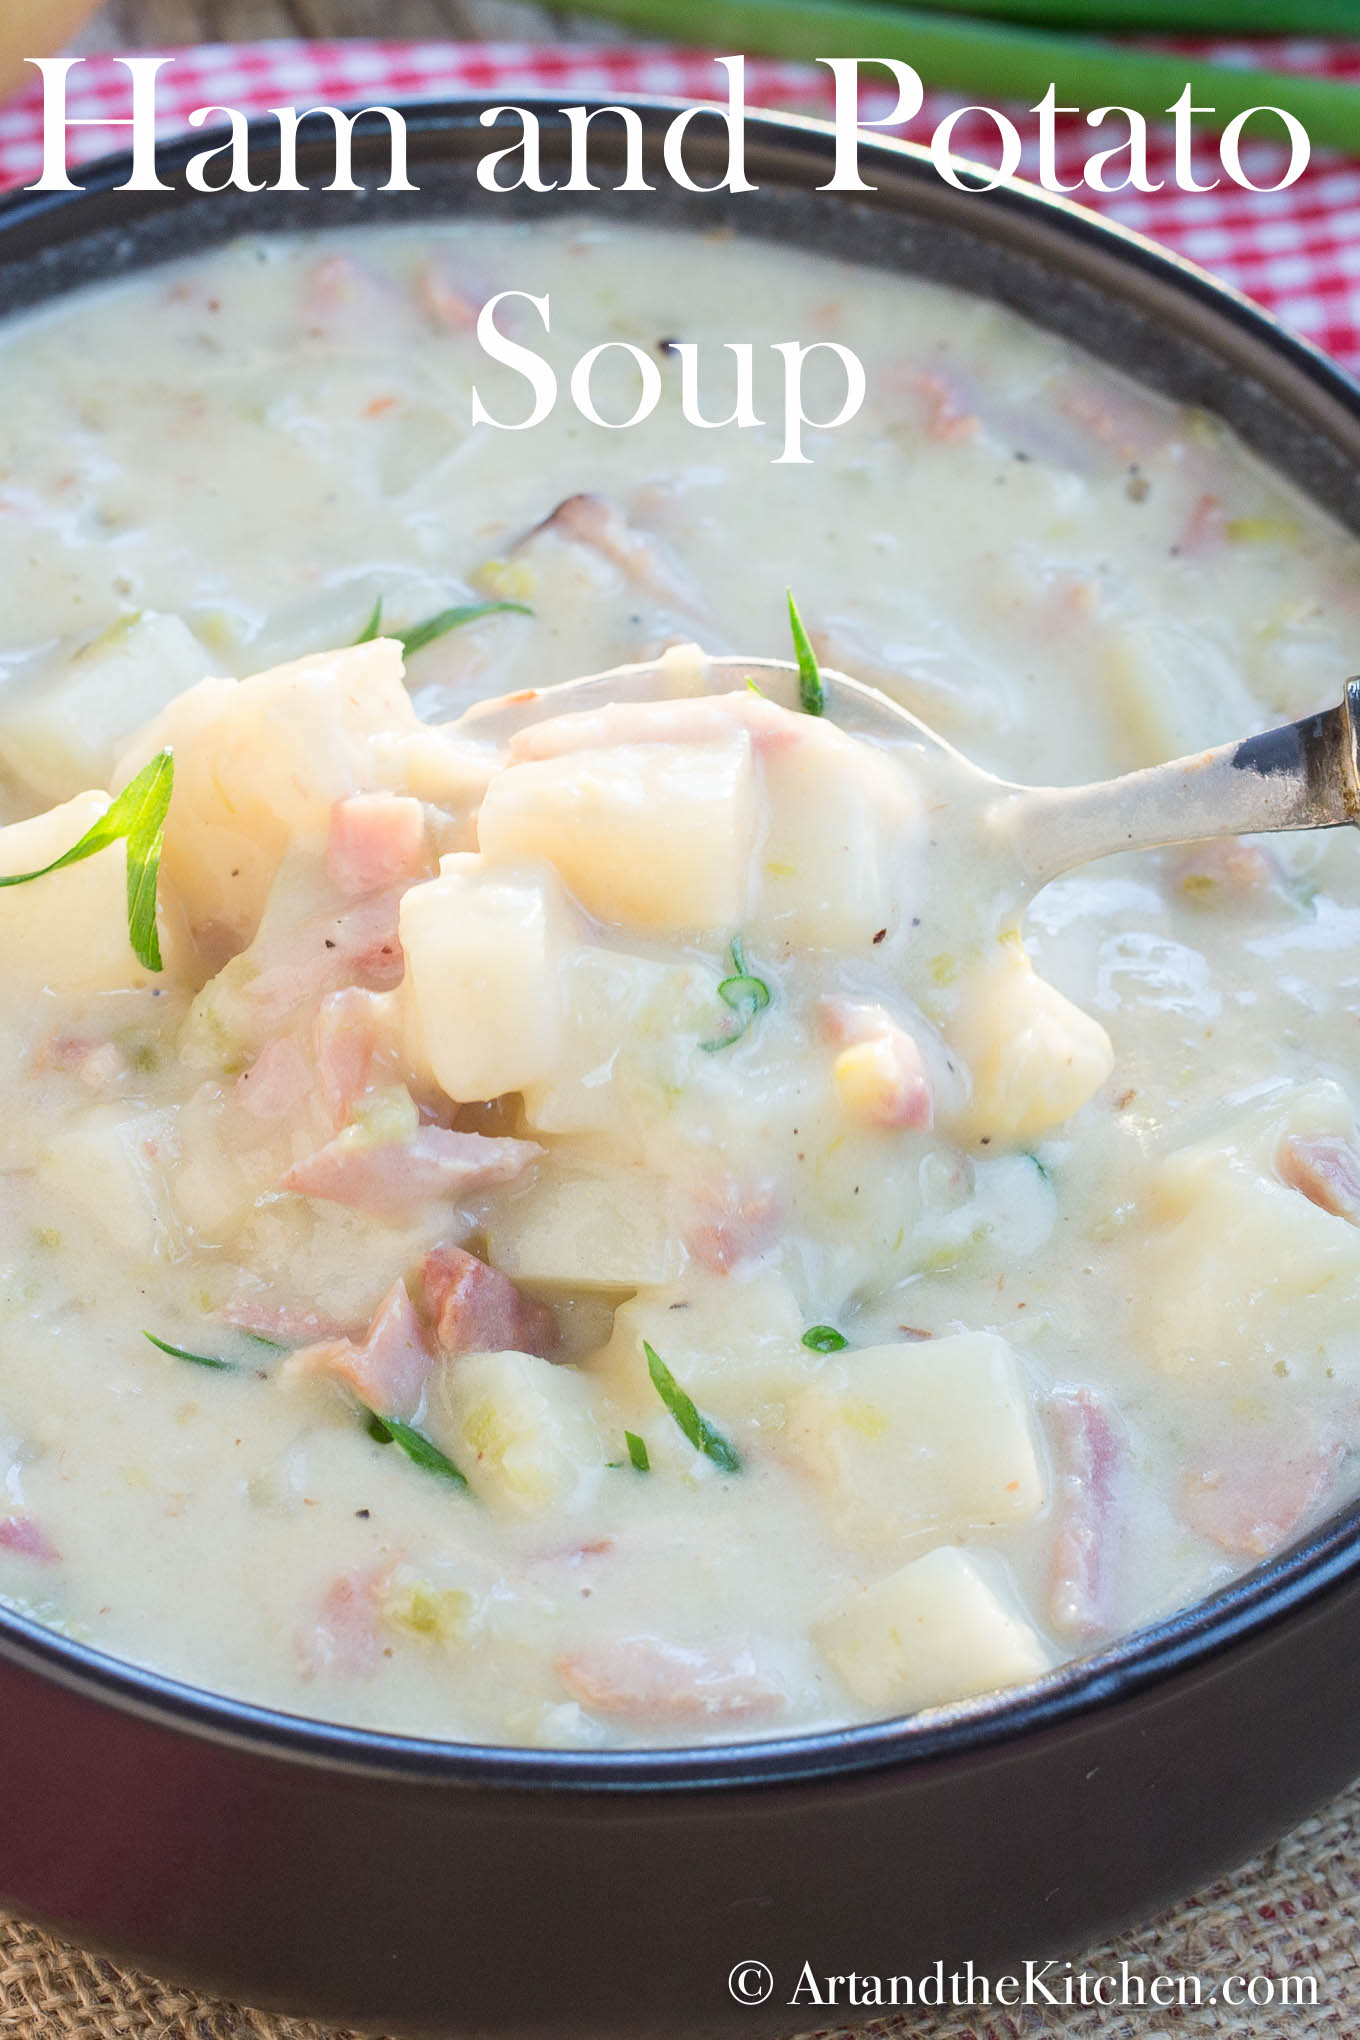 My Ham and Potato Soup recipe has a rich and creamy texture without the use of cream. It is perfectly seasoned with leeks, onion, celery and a bit of garlic. #hamsoup #potatosoup #soup via @artandthekitch